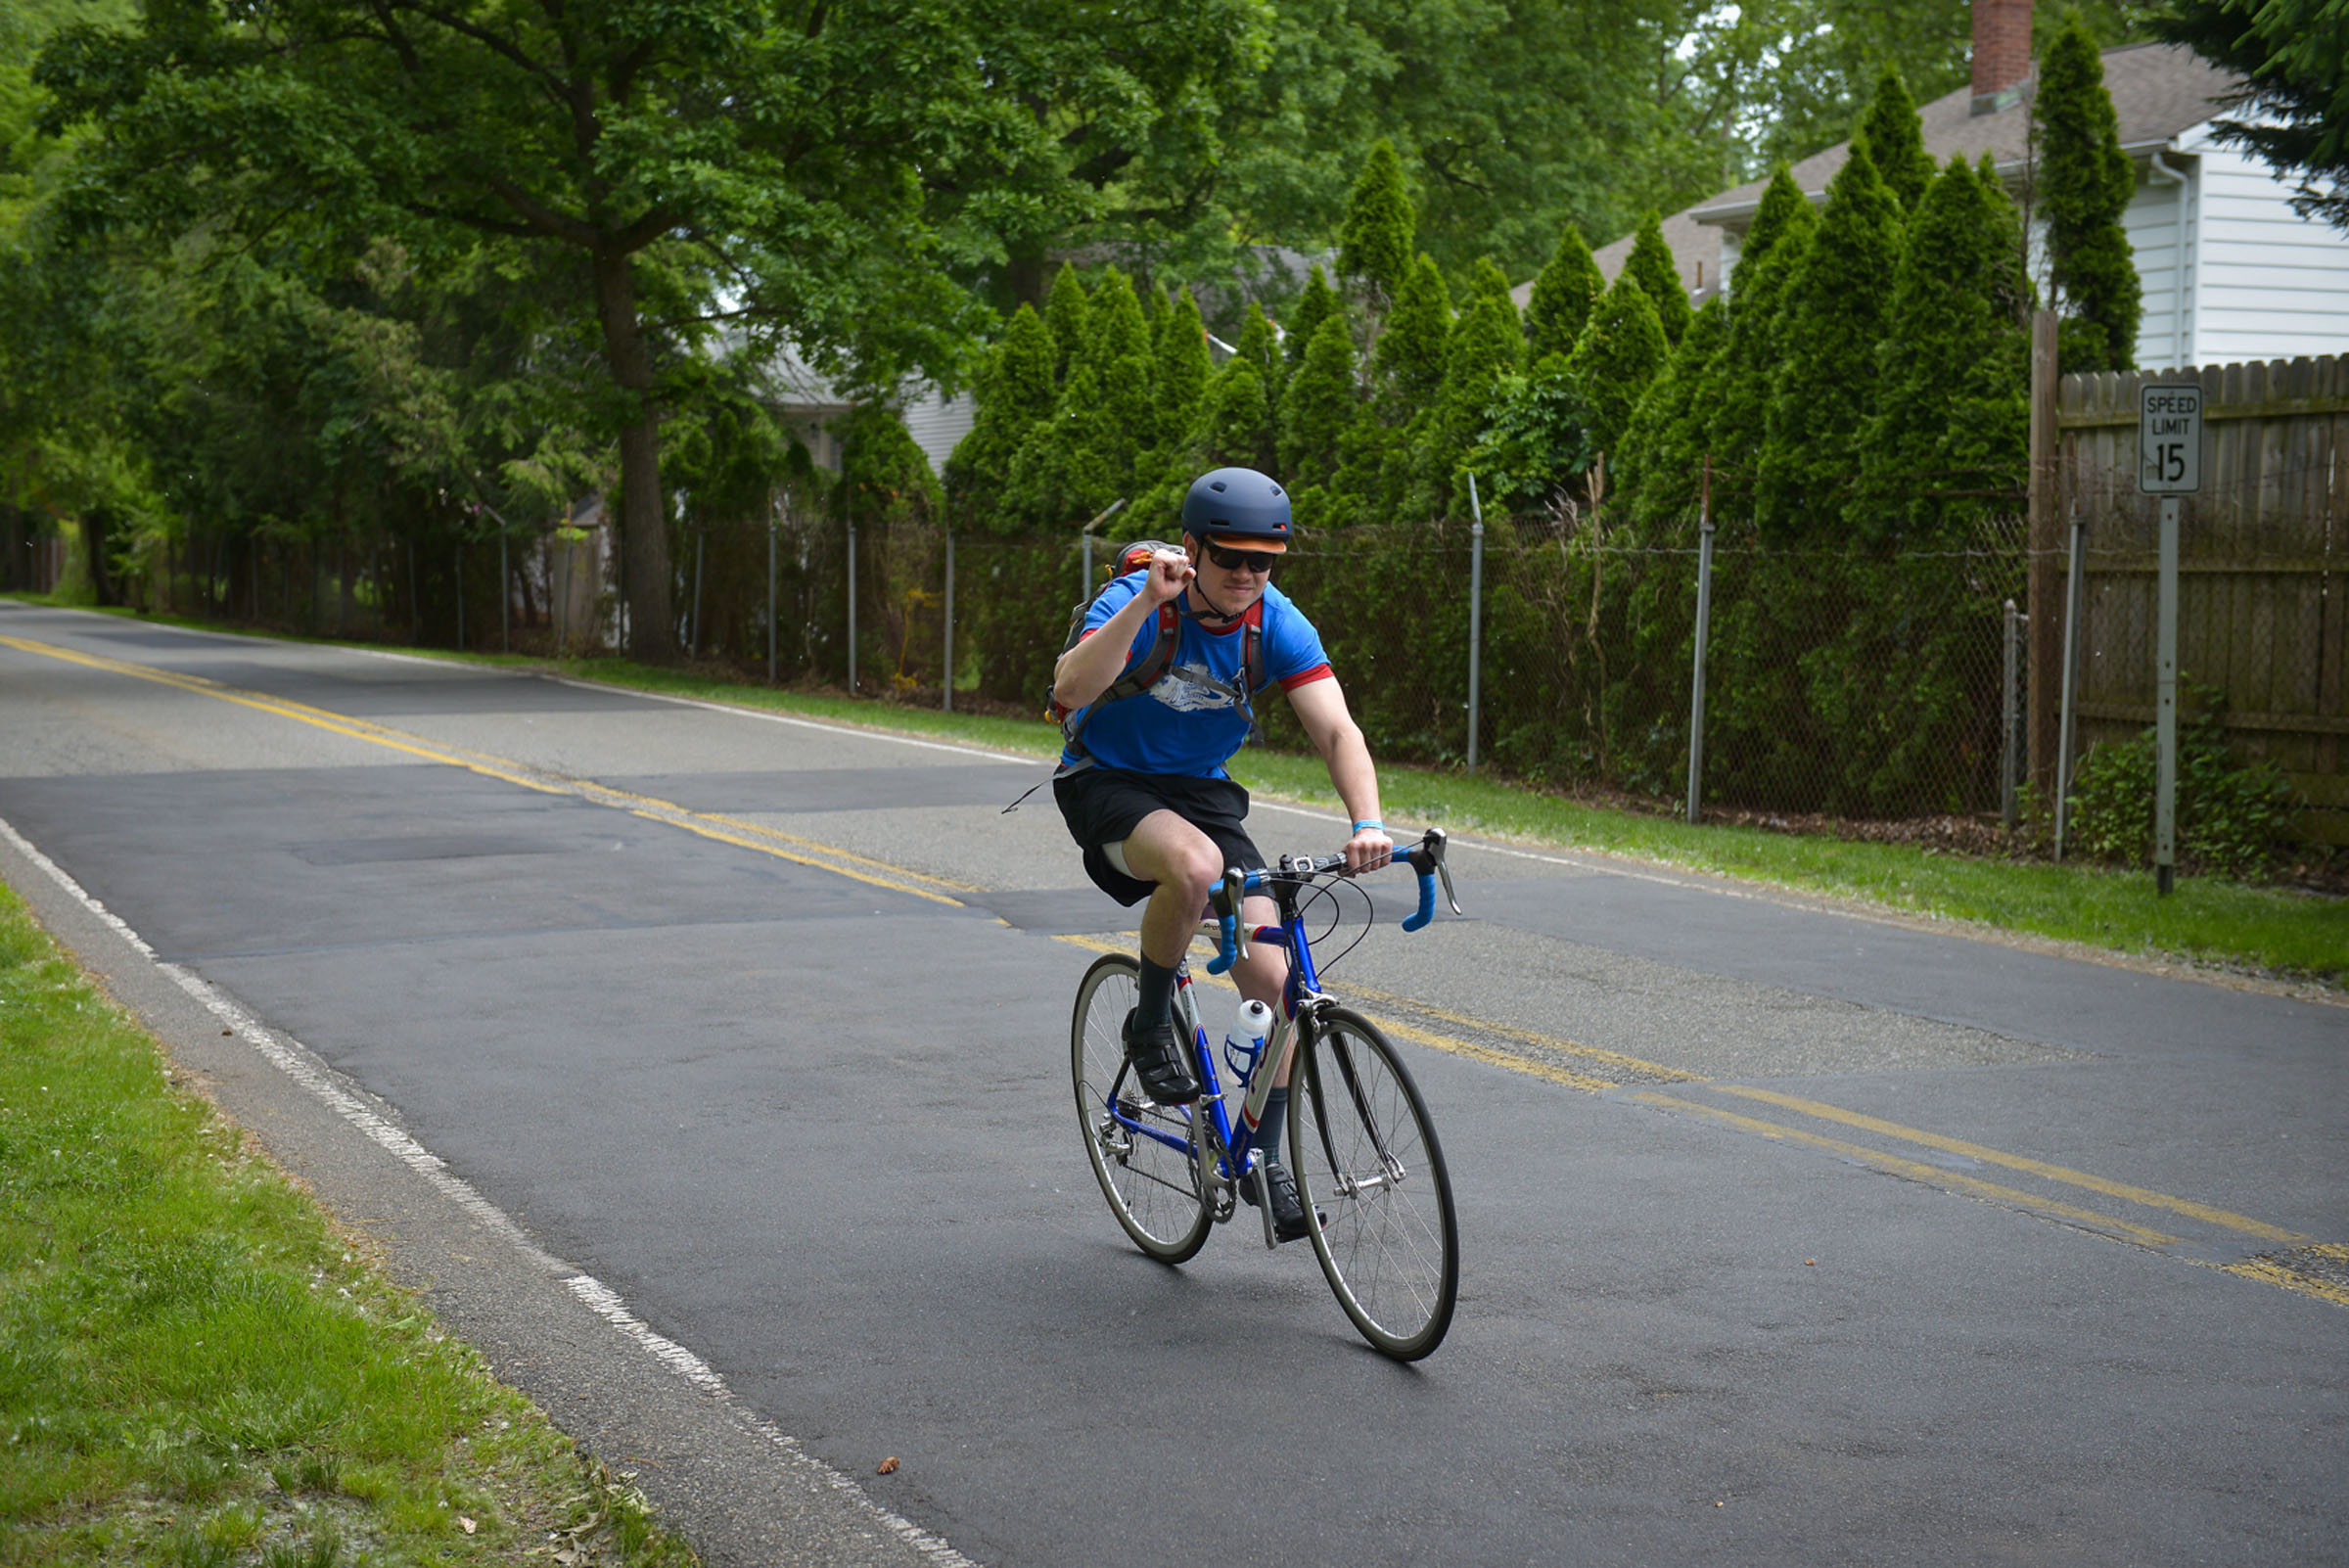 2017-06-04 GTD4A Charity Bike Ride - BCC - Paramus NJ-2426.jpg